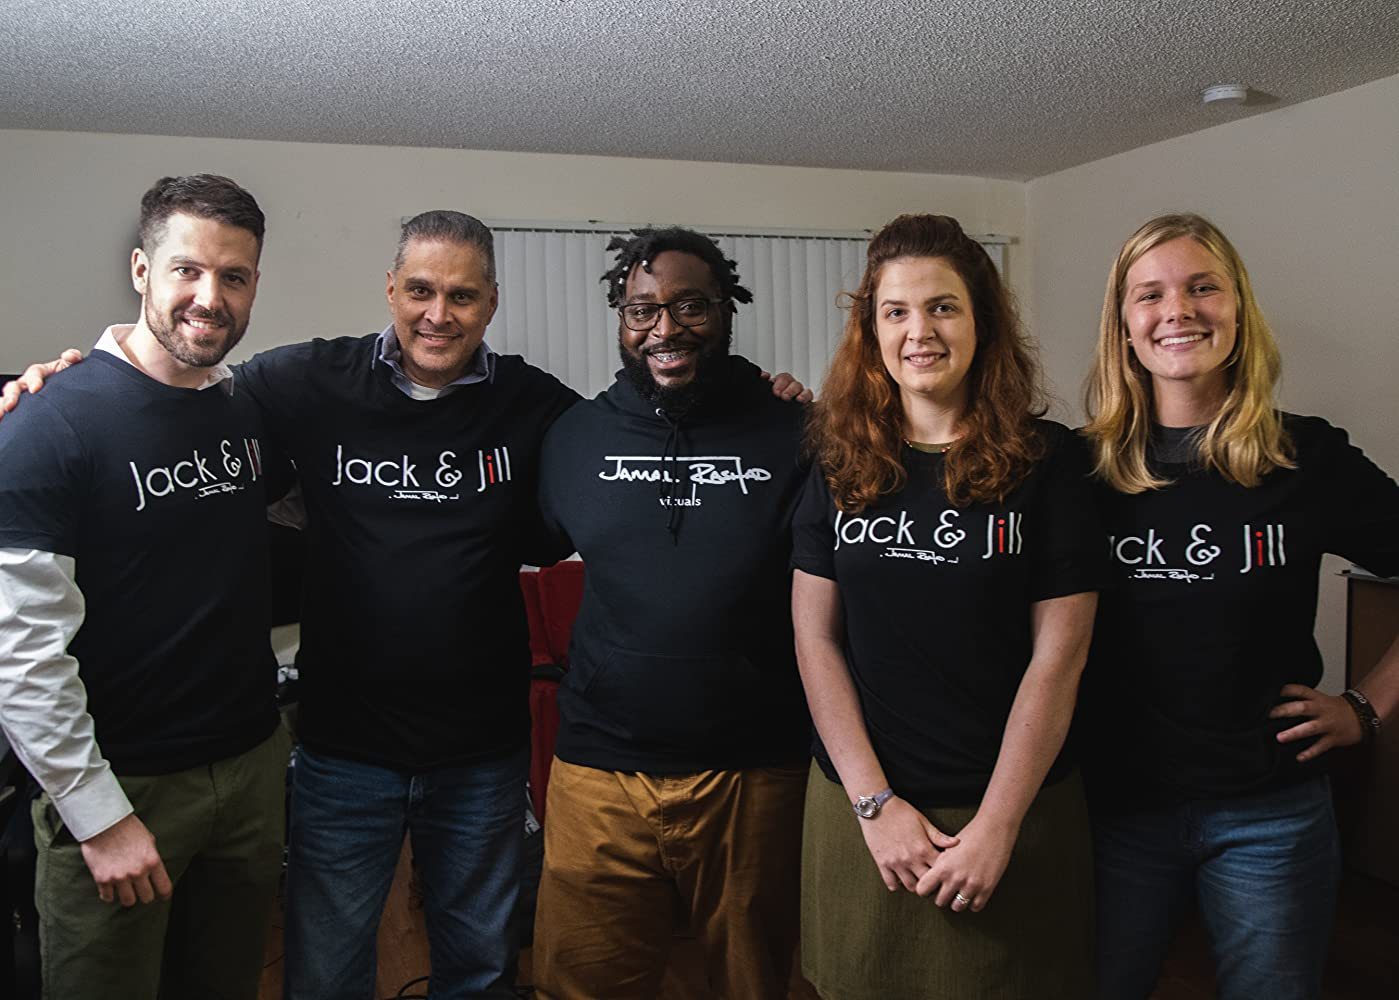 Jamal Rashad has been telling important stories his whole life, and 'Jack and Jill' is no different. He's using his platform to give survivors a voice.